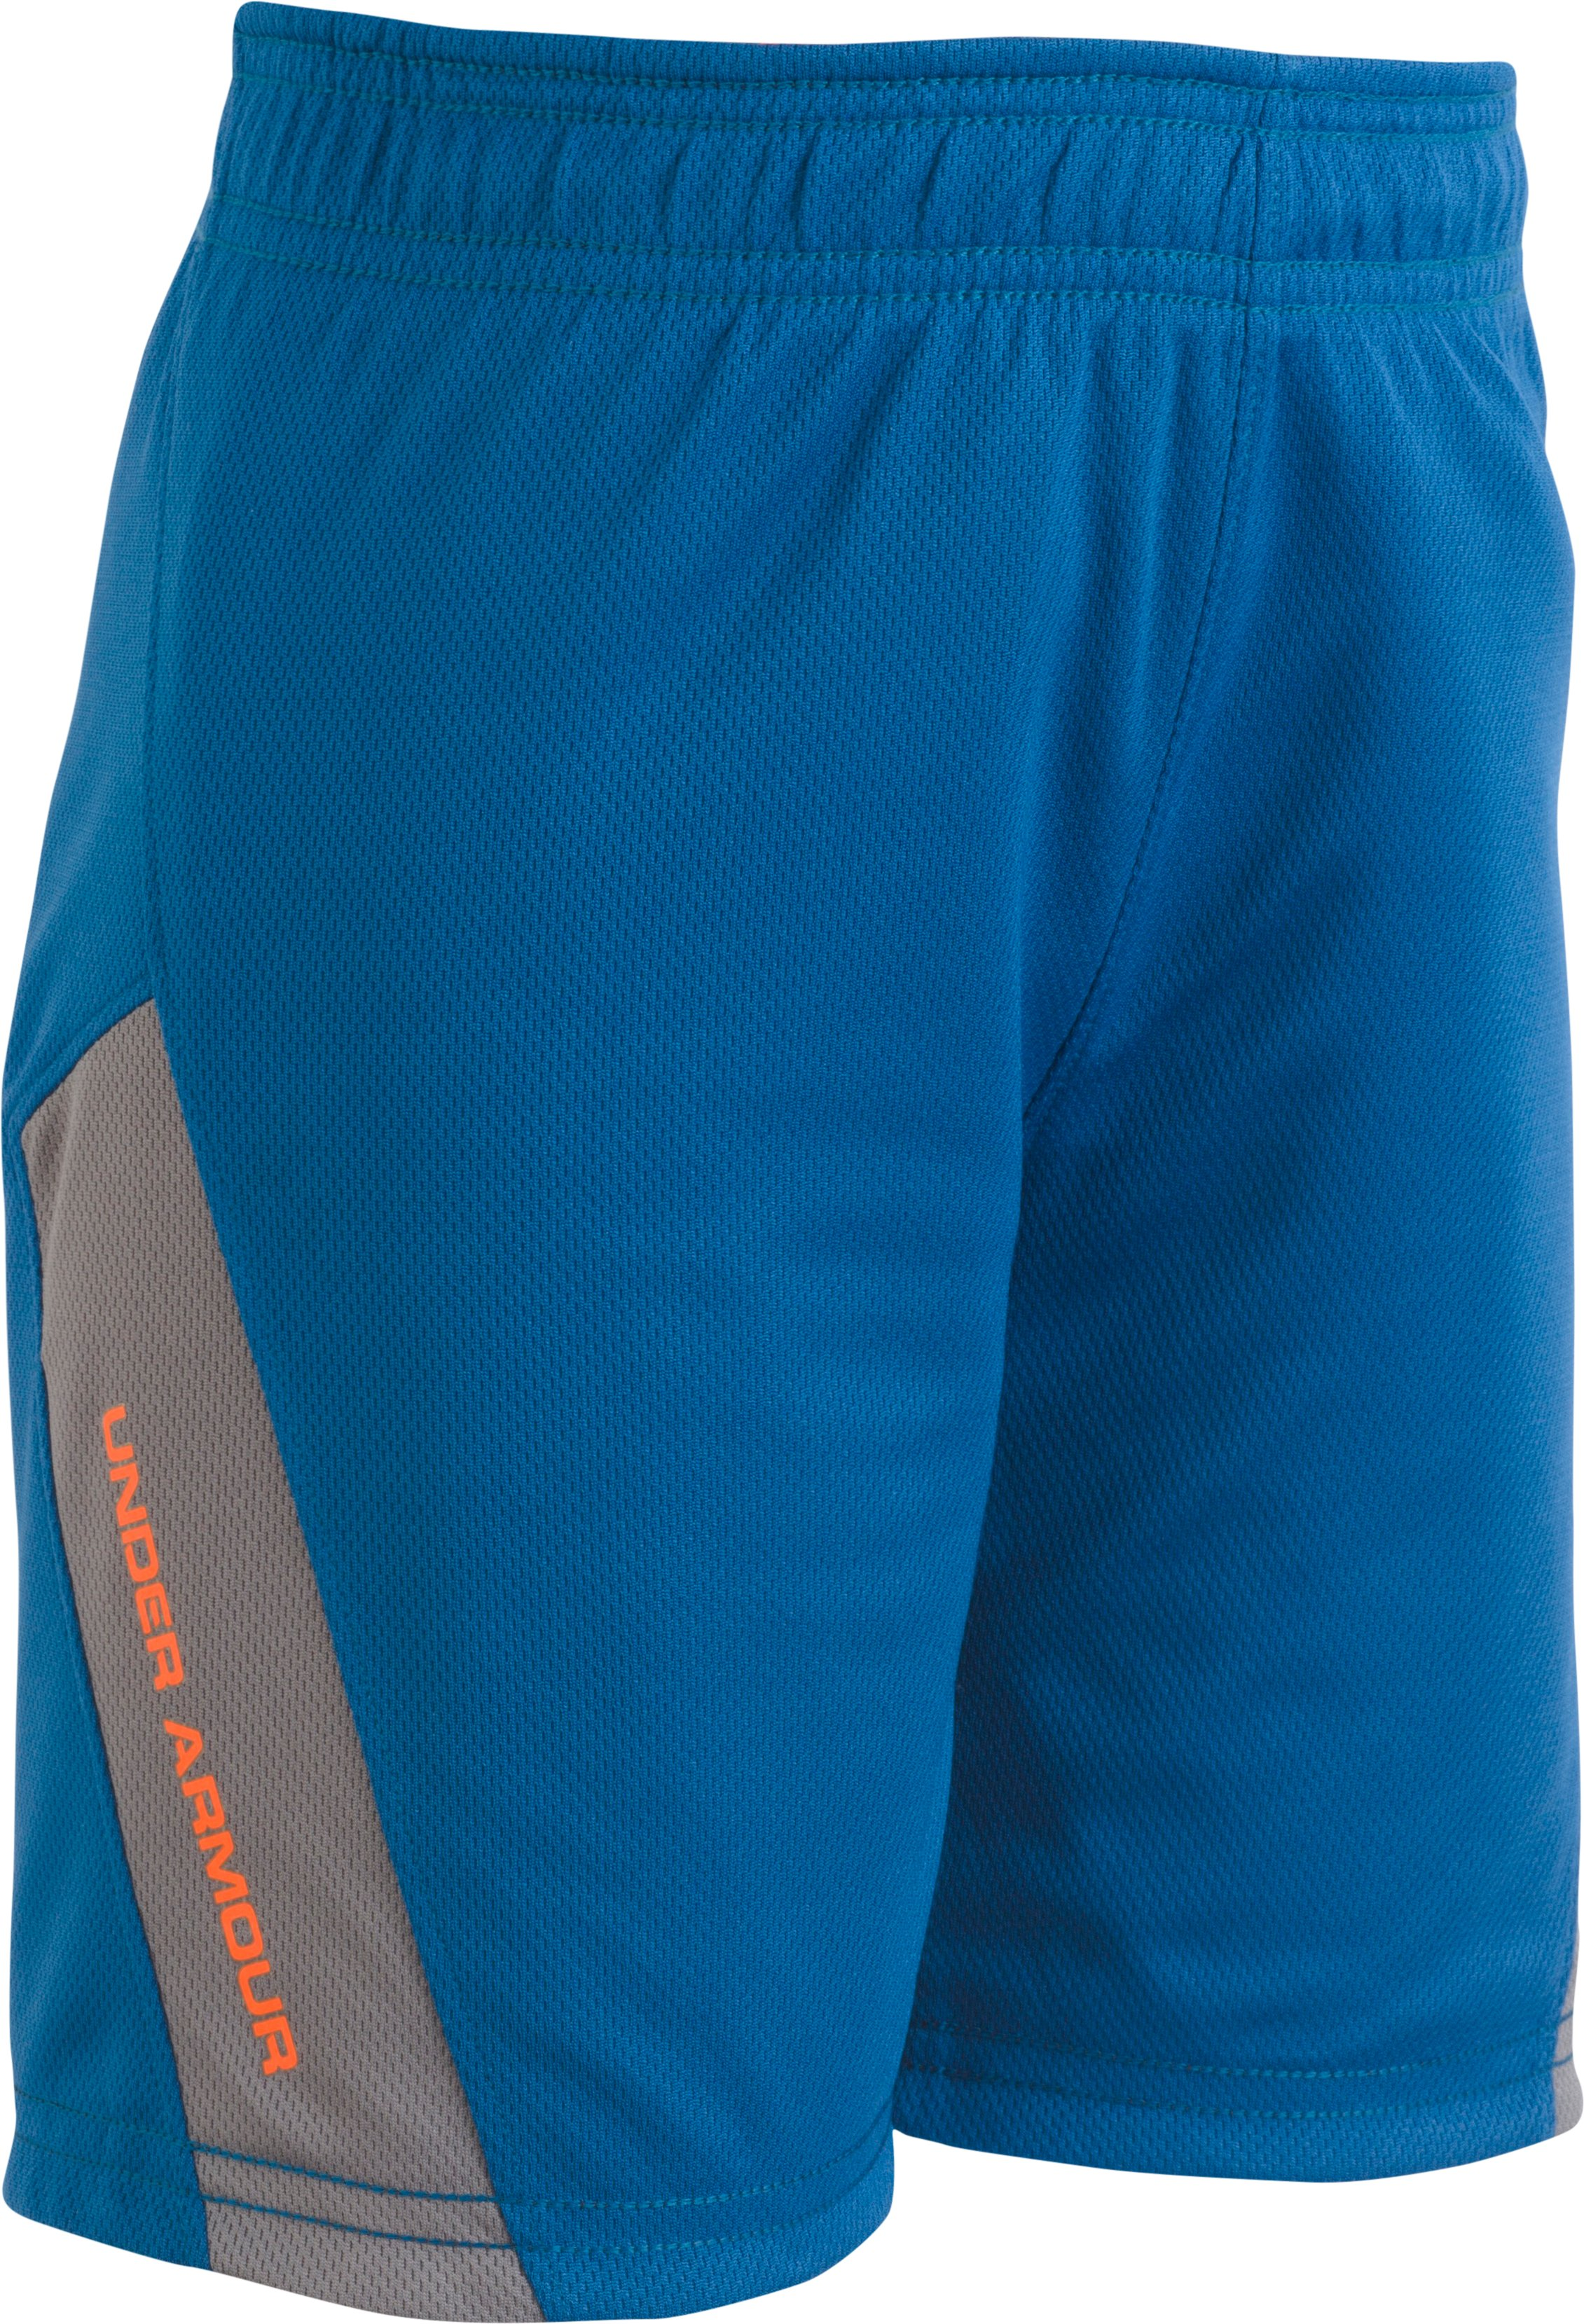 Boys' Pre-School UA Reversible Shorts, Moroccan Blue, Laydown